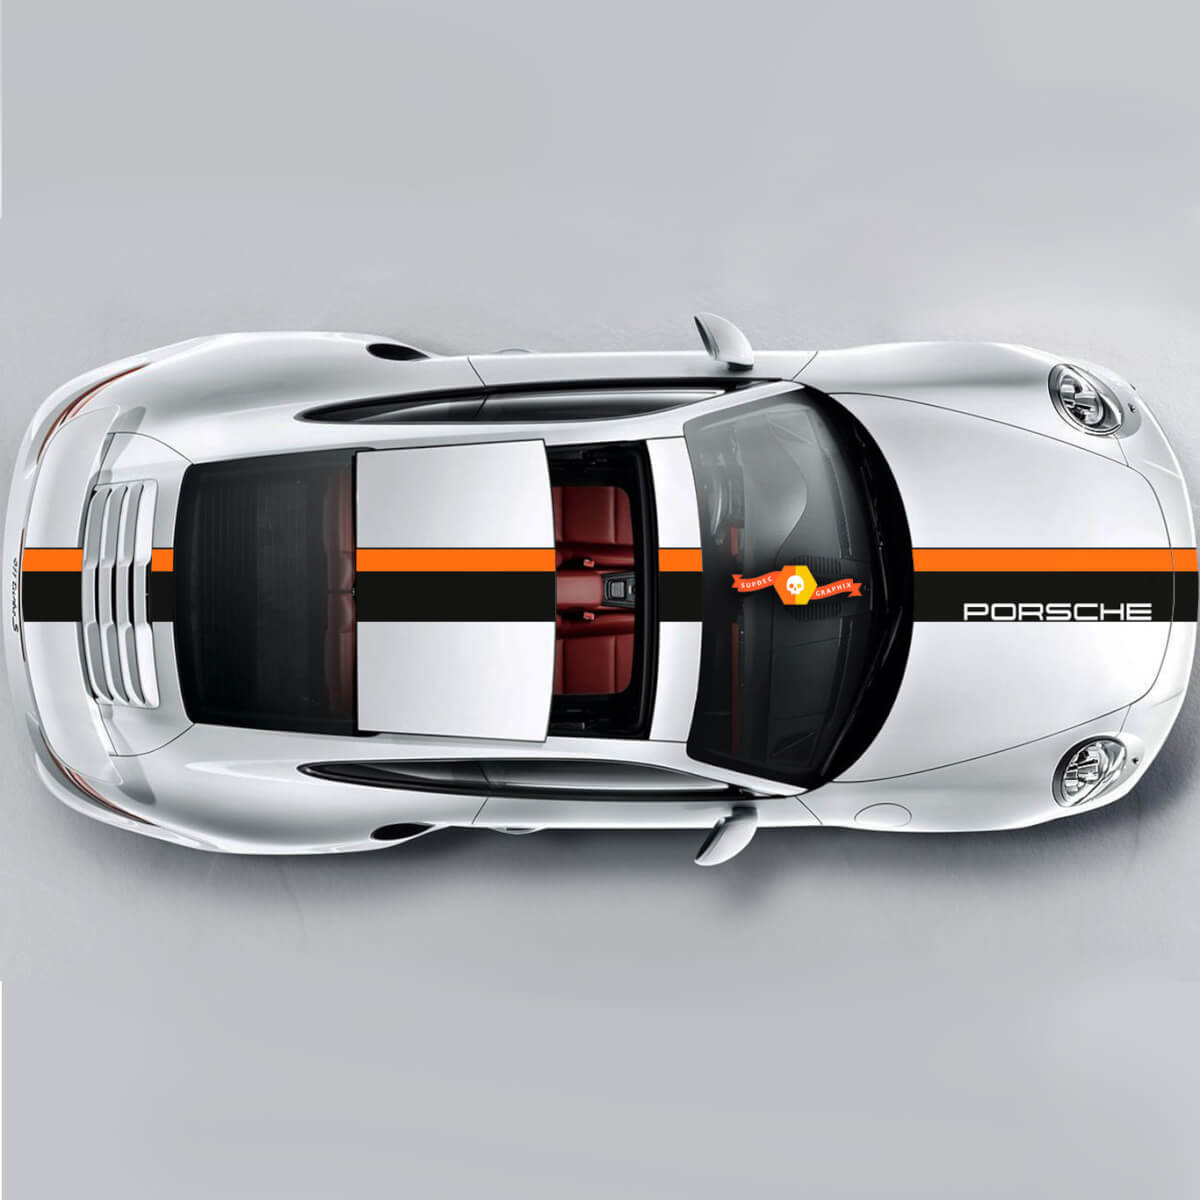 Set Stripes Graphic Decals For Porsche Carrera Cayman Boxster Or Any Porsche